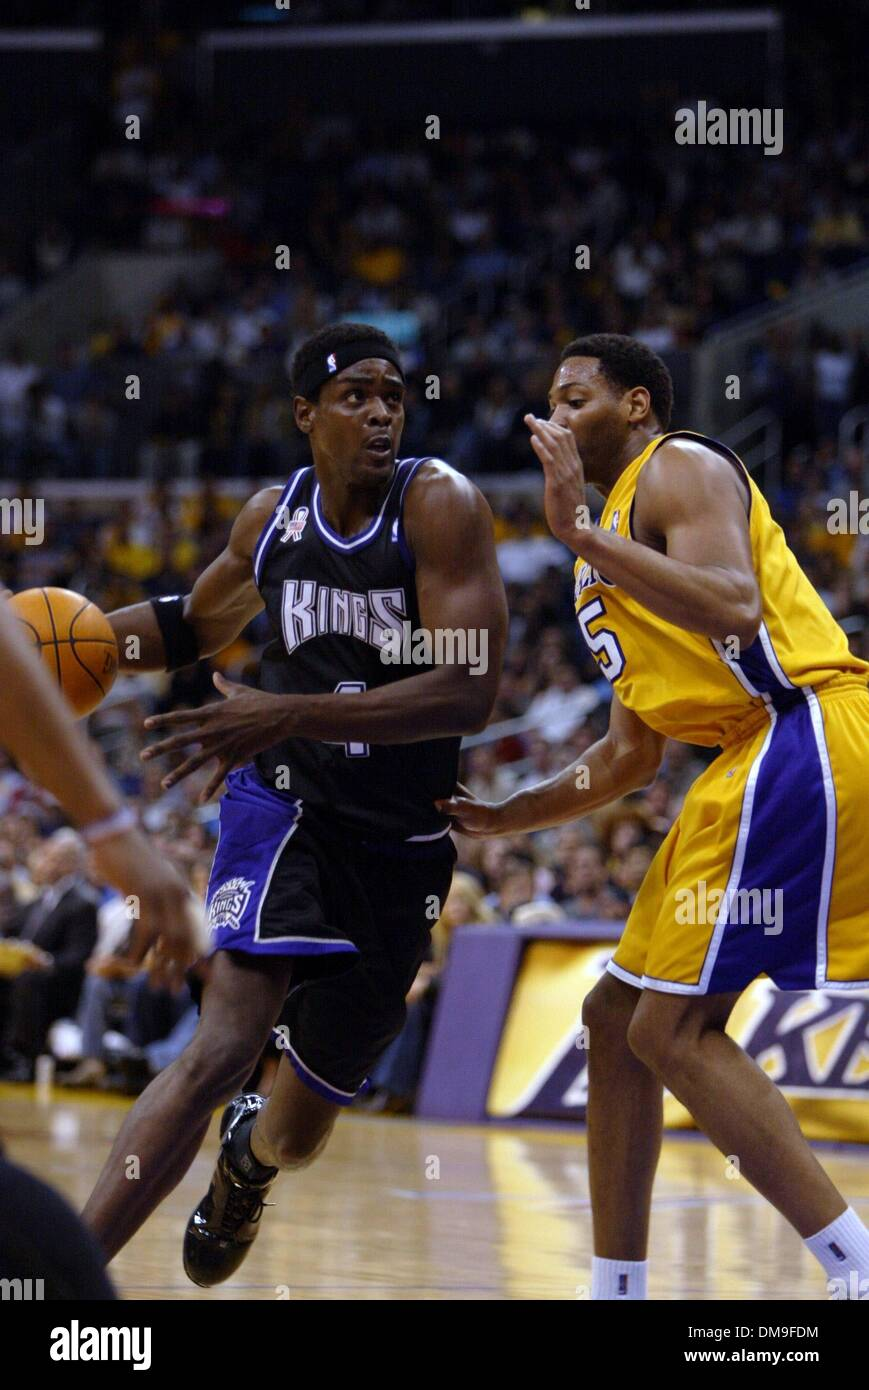 f14549d7afb Chris Webber drives to the basket against Robert Horry in the first quarter  in game three